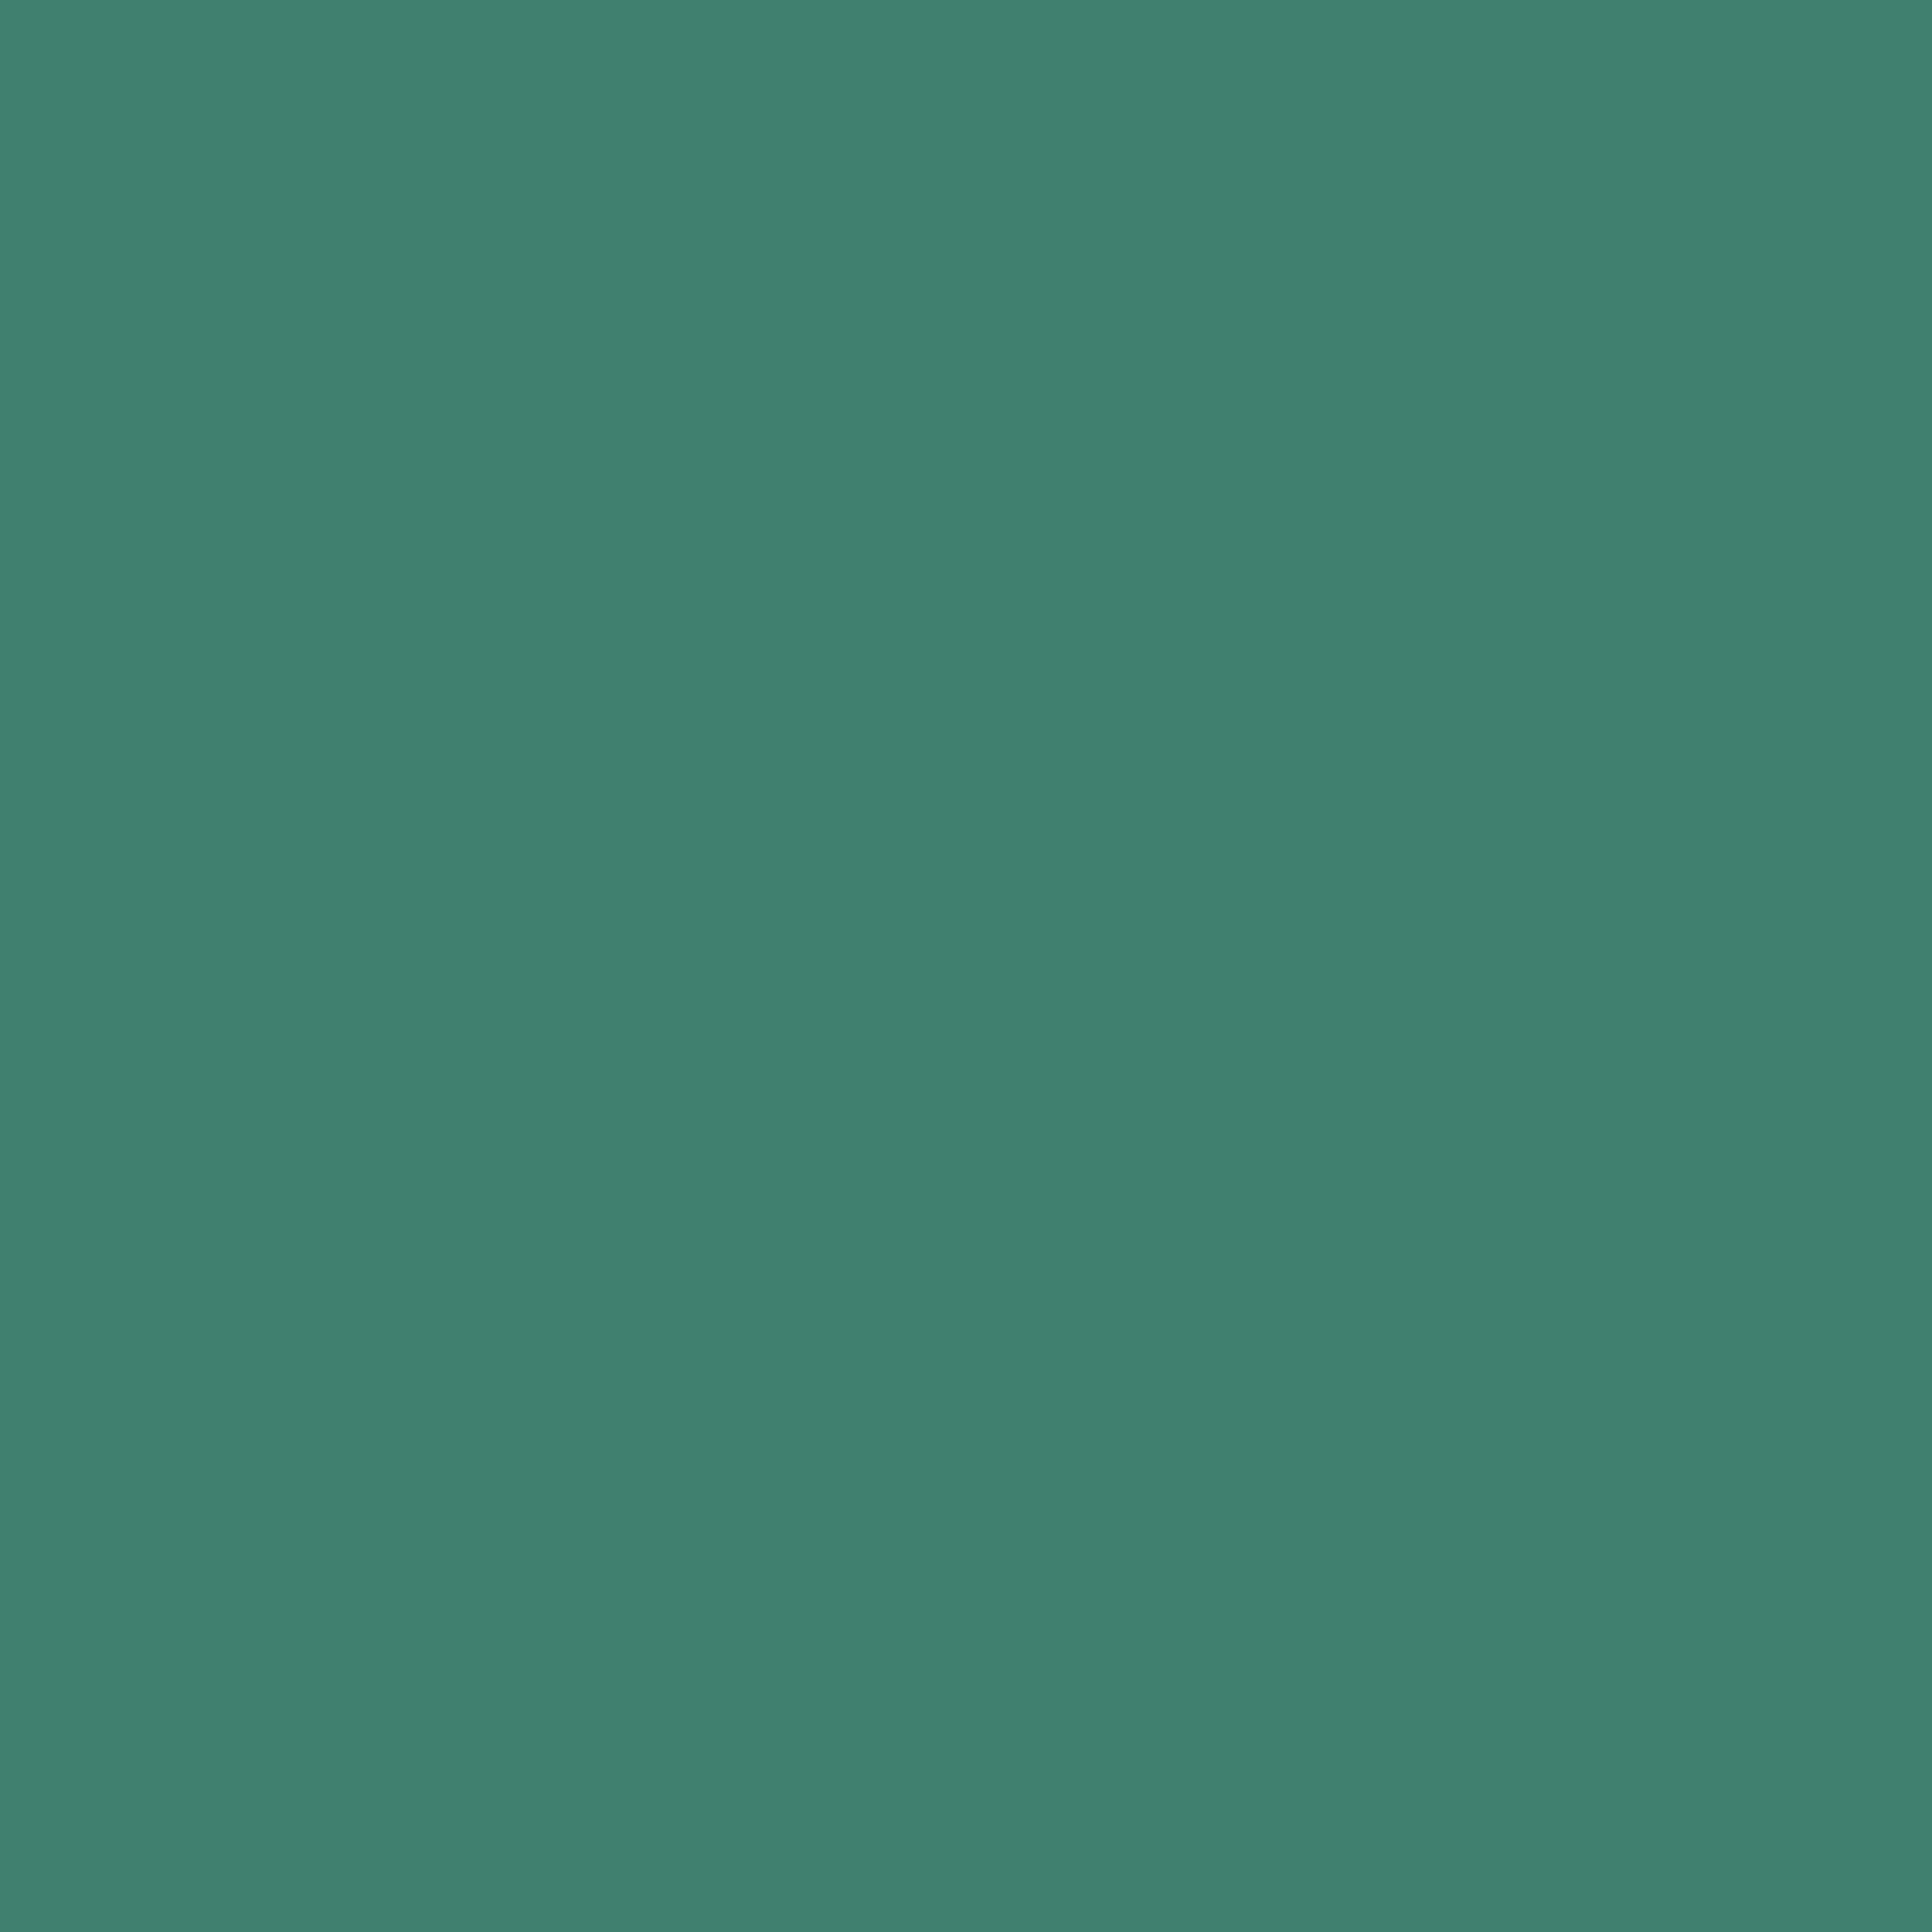 2732x2732 Viridian Solid Color Background